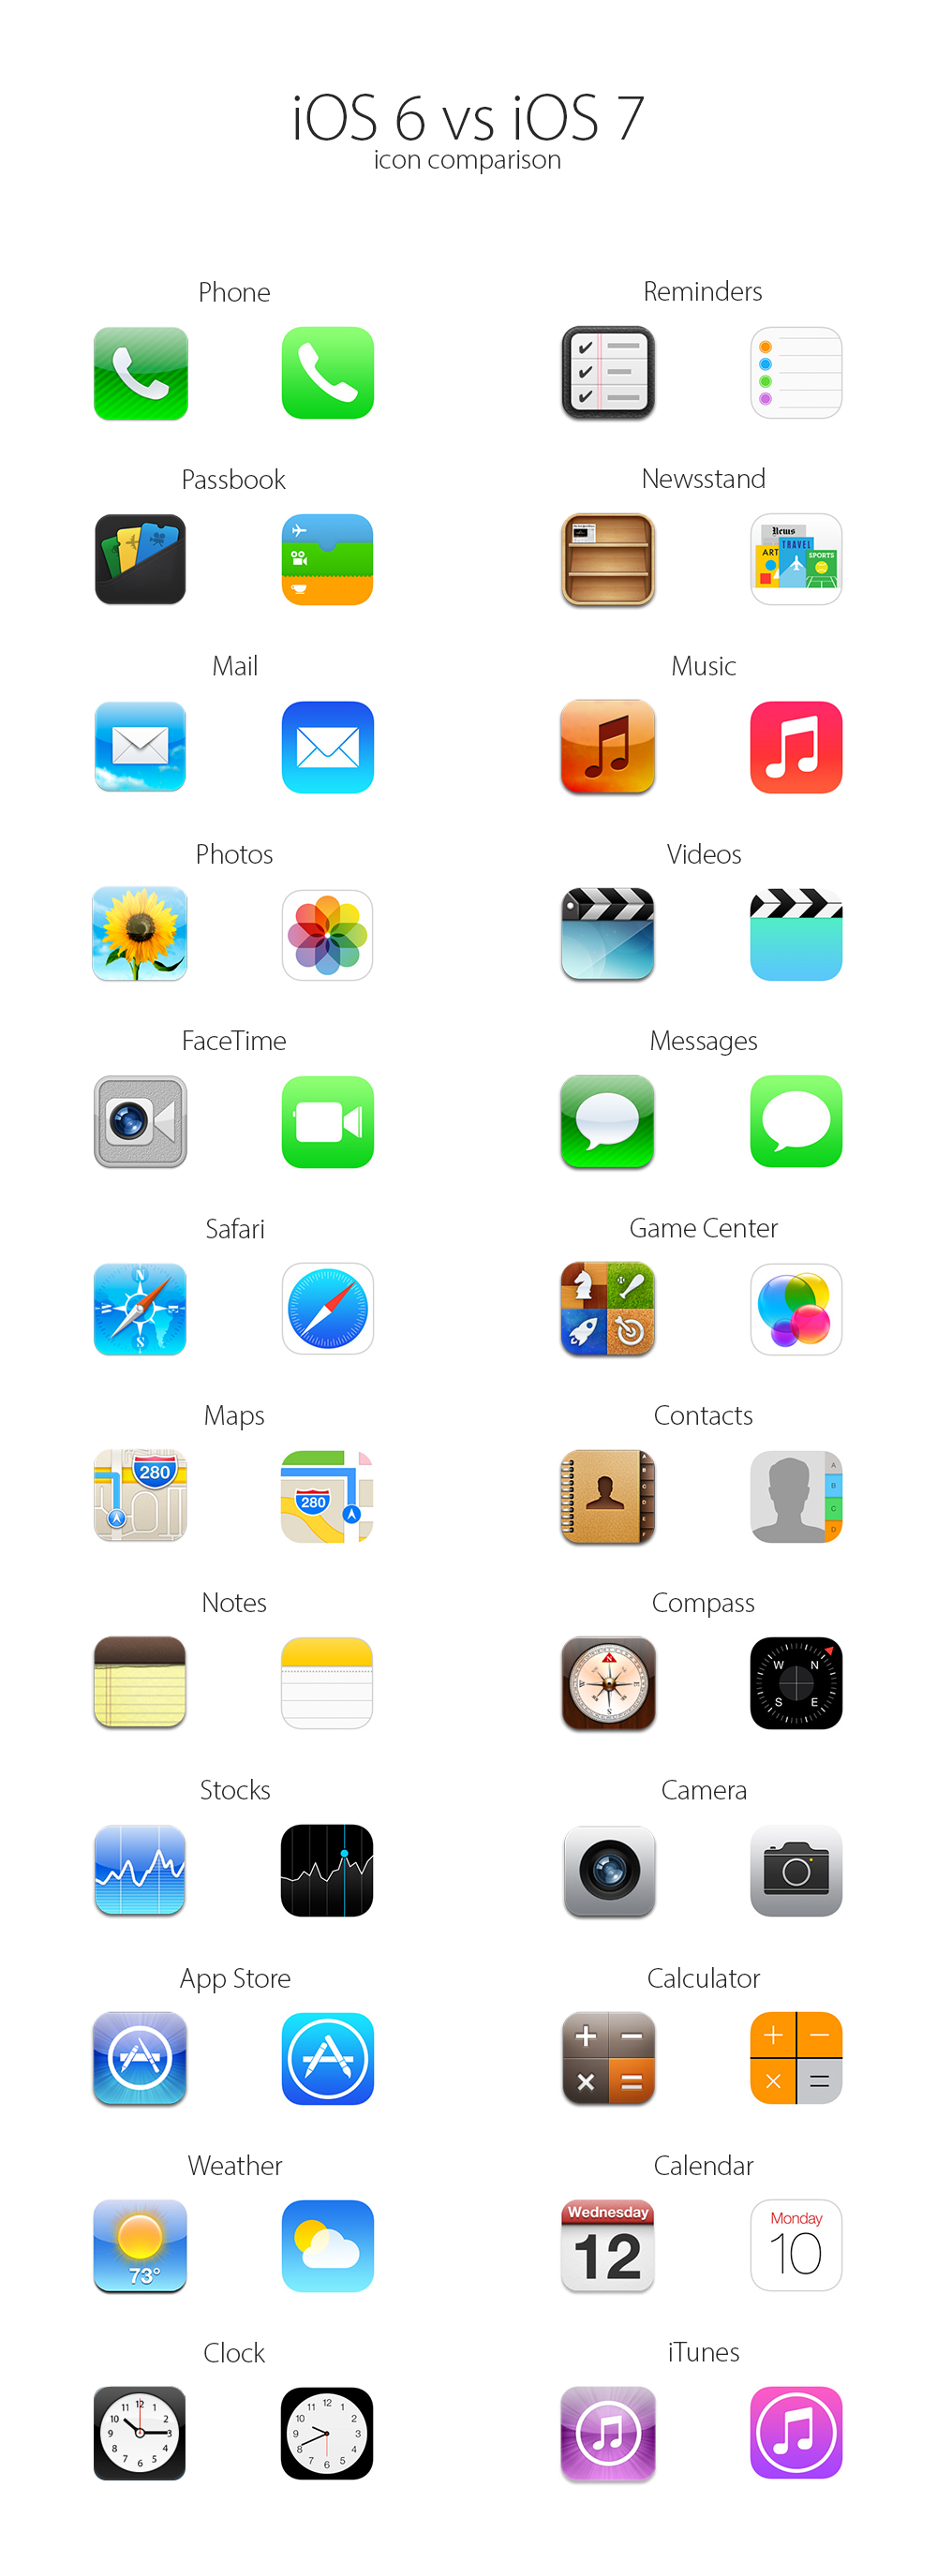 iOS-6-vs-iOS-7-icons